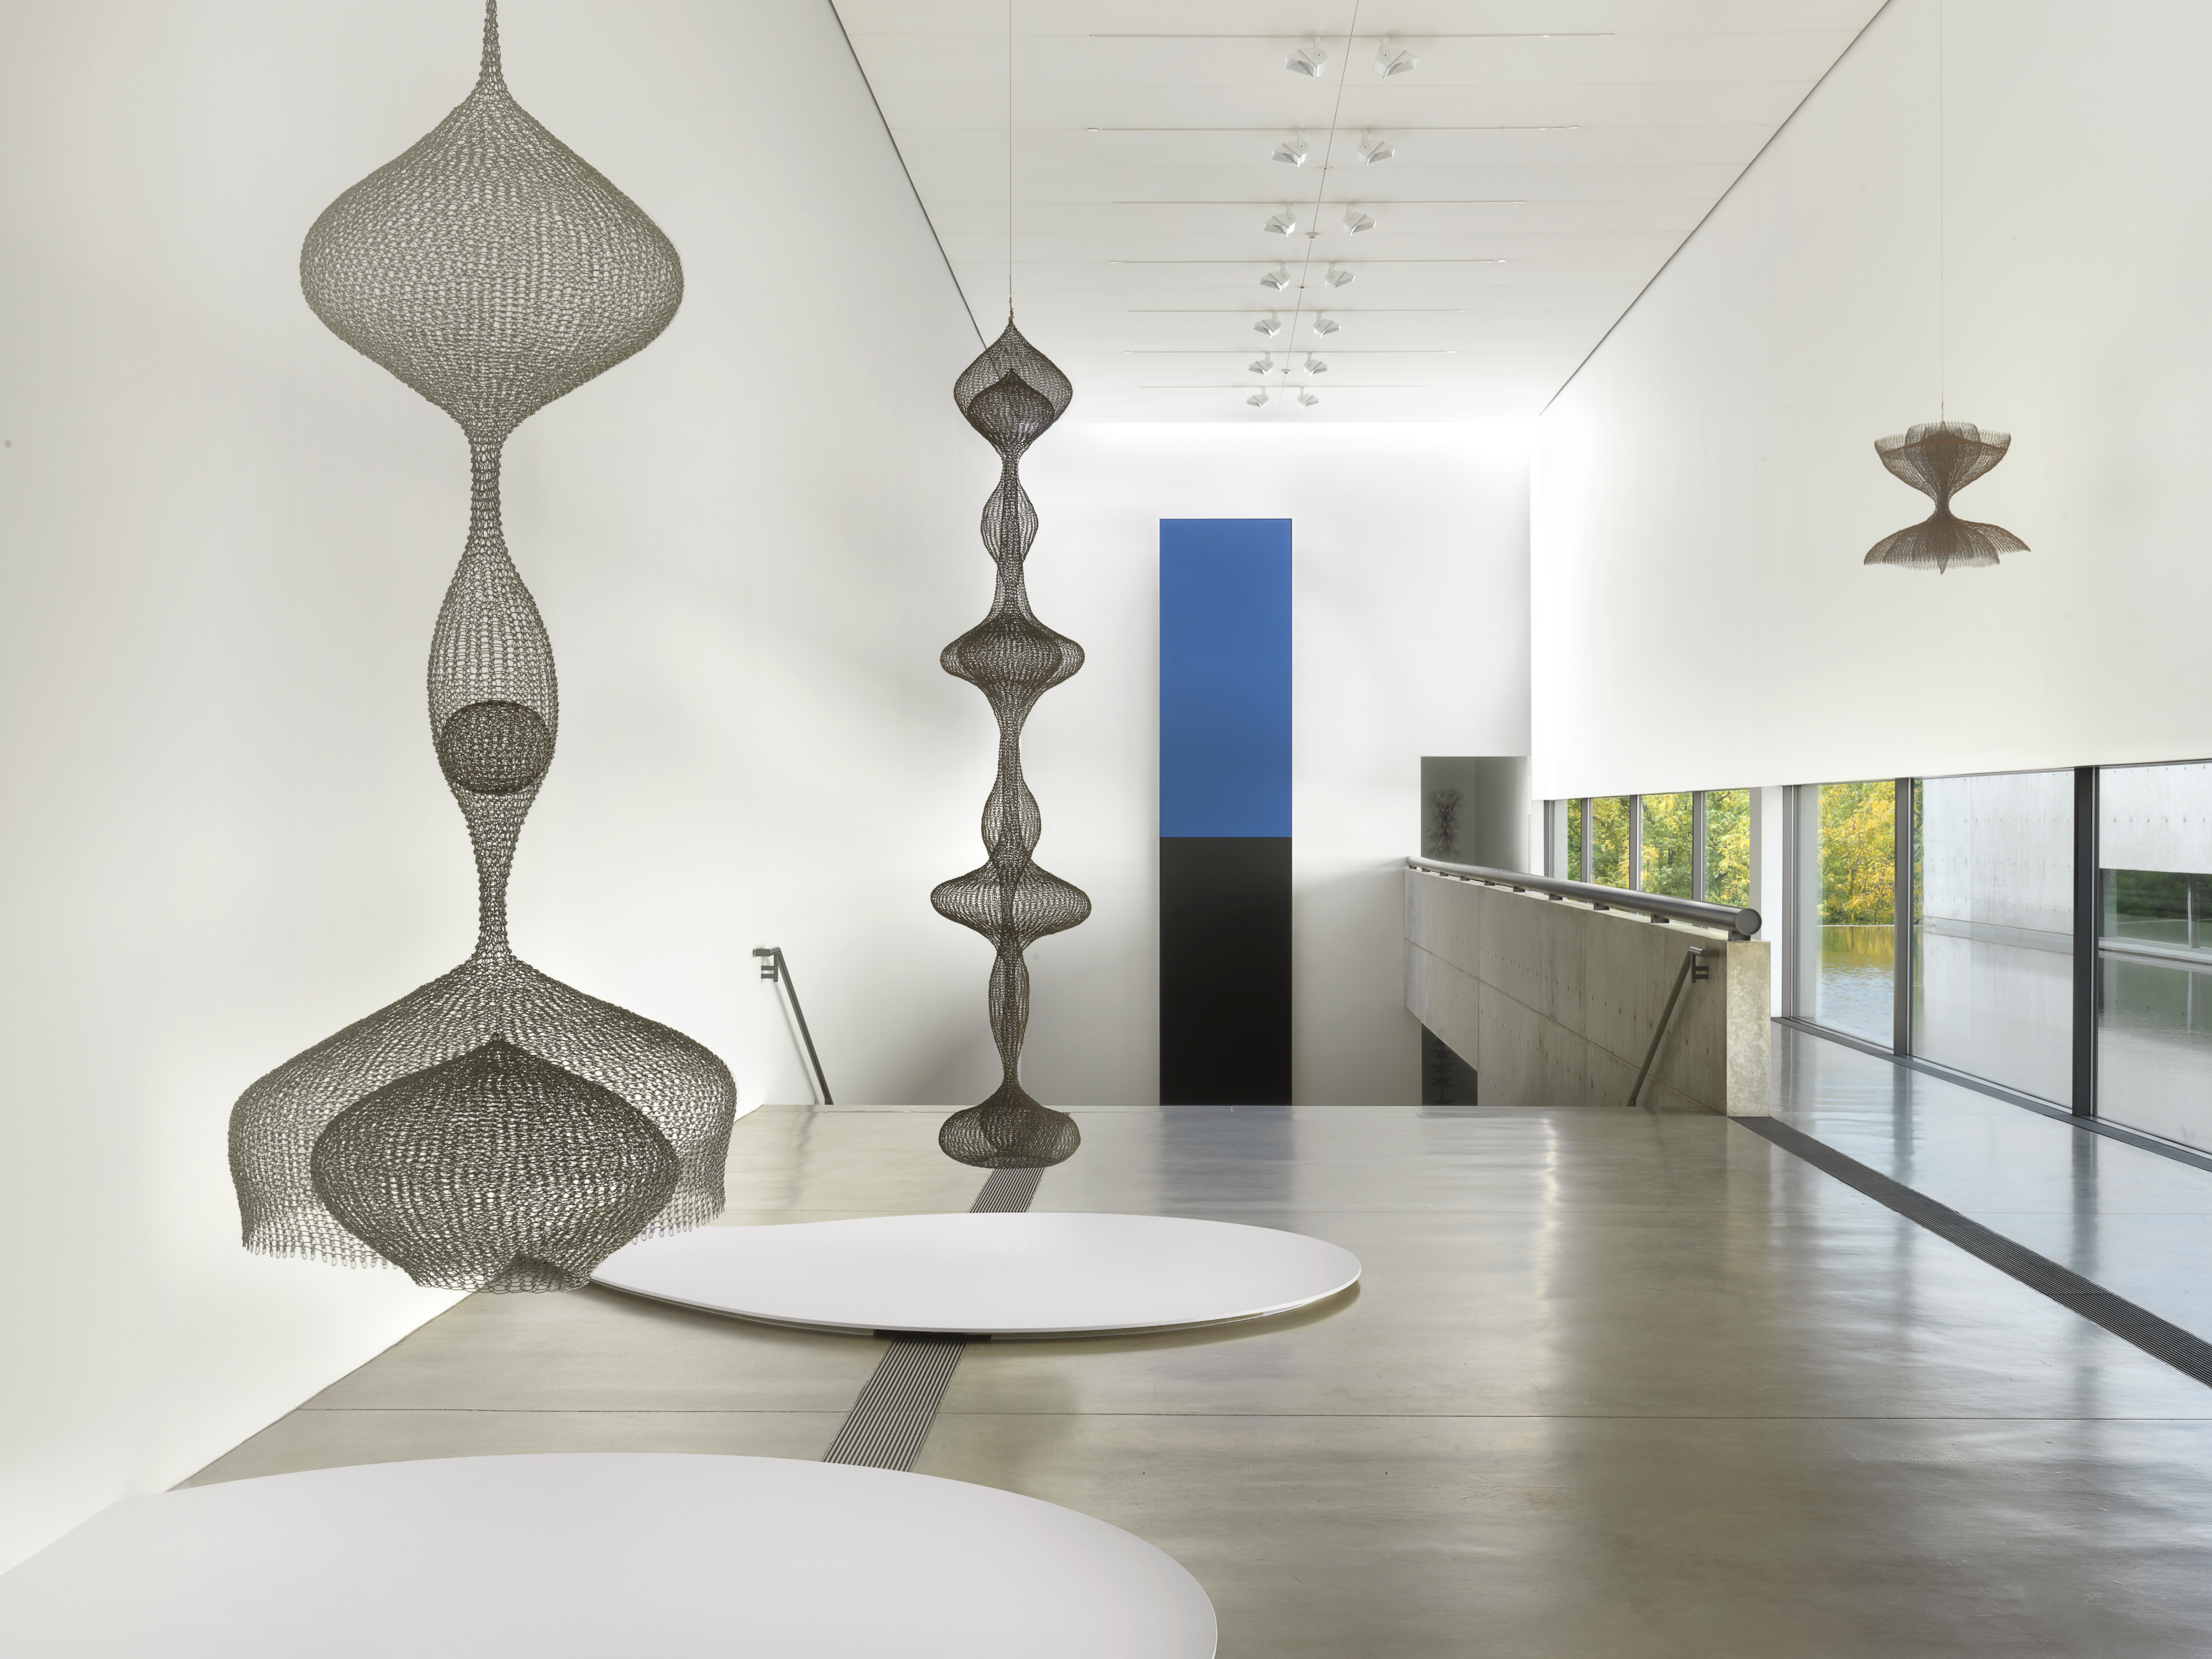 Installation view of the exhibition, Ruth Asawa: Life's Work, at the Pulitzer Arts Foundation in St. Louis, dated 2018.